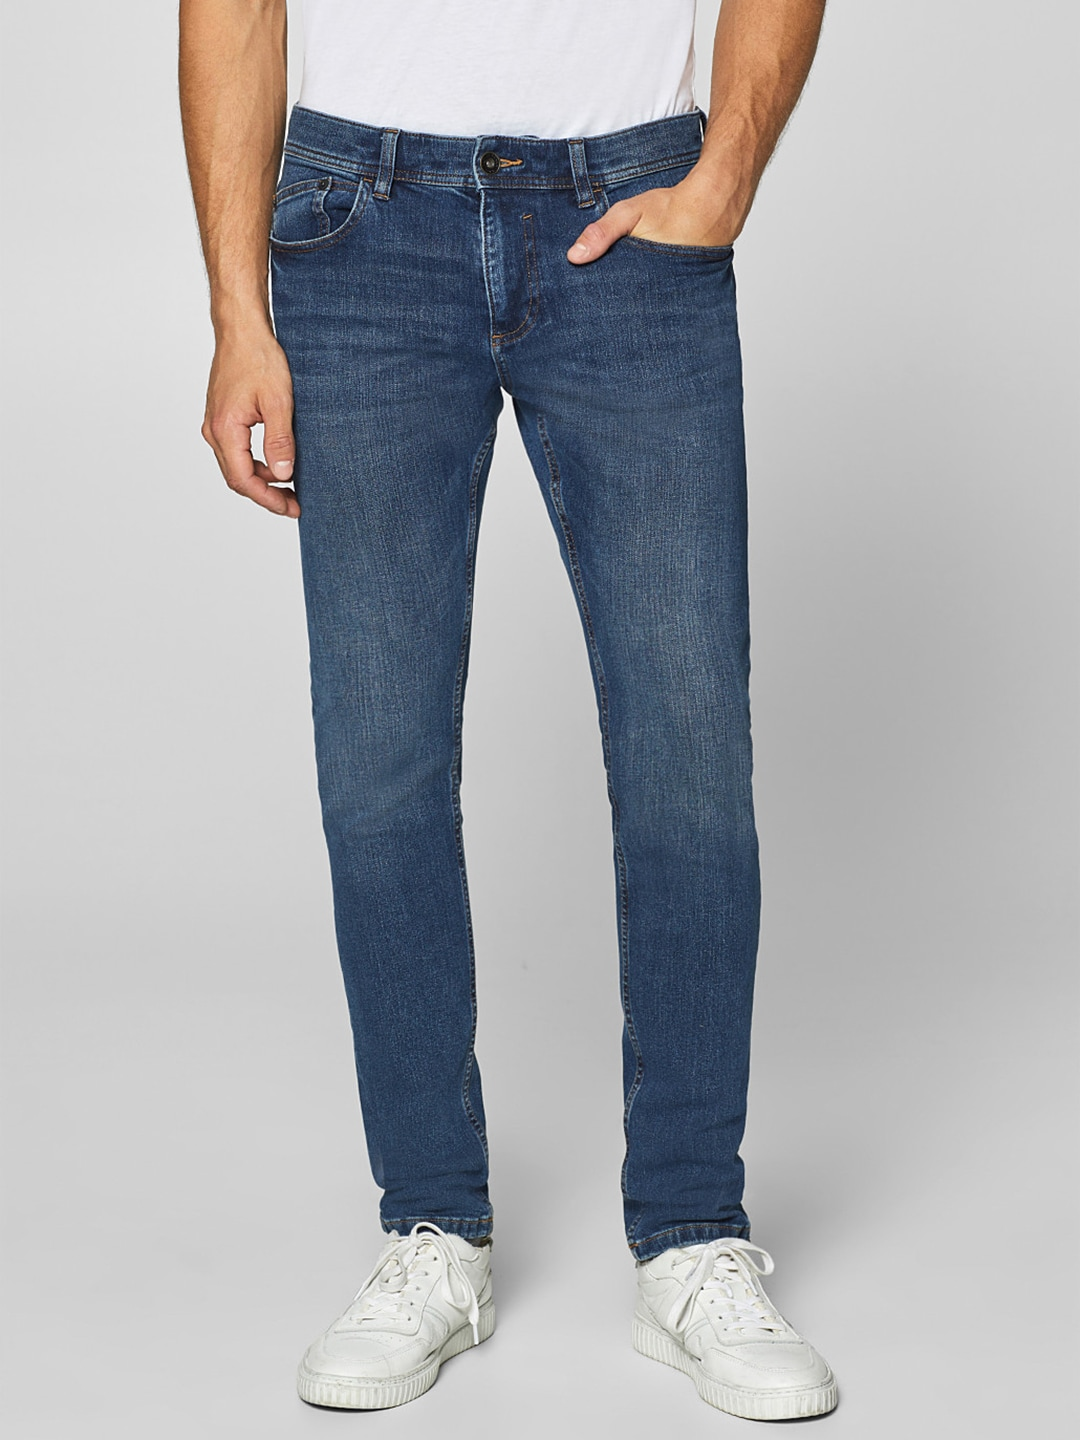 India Jeans Buy Esprit In Online qUSxwRY